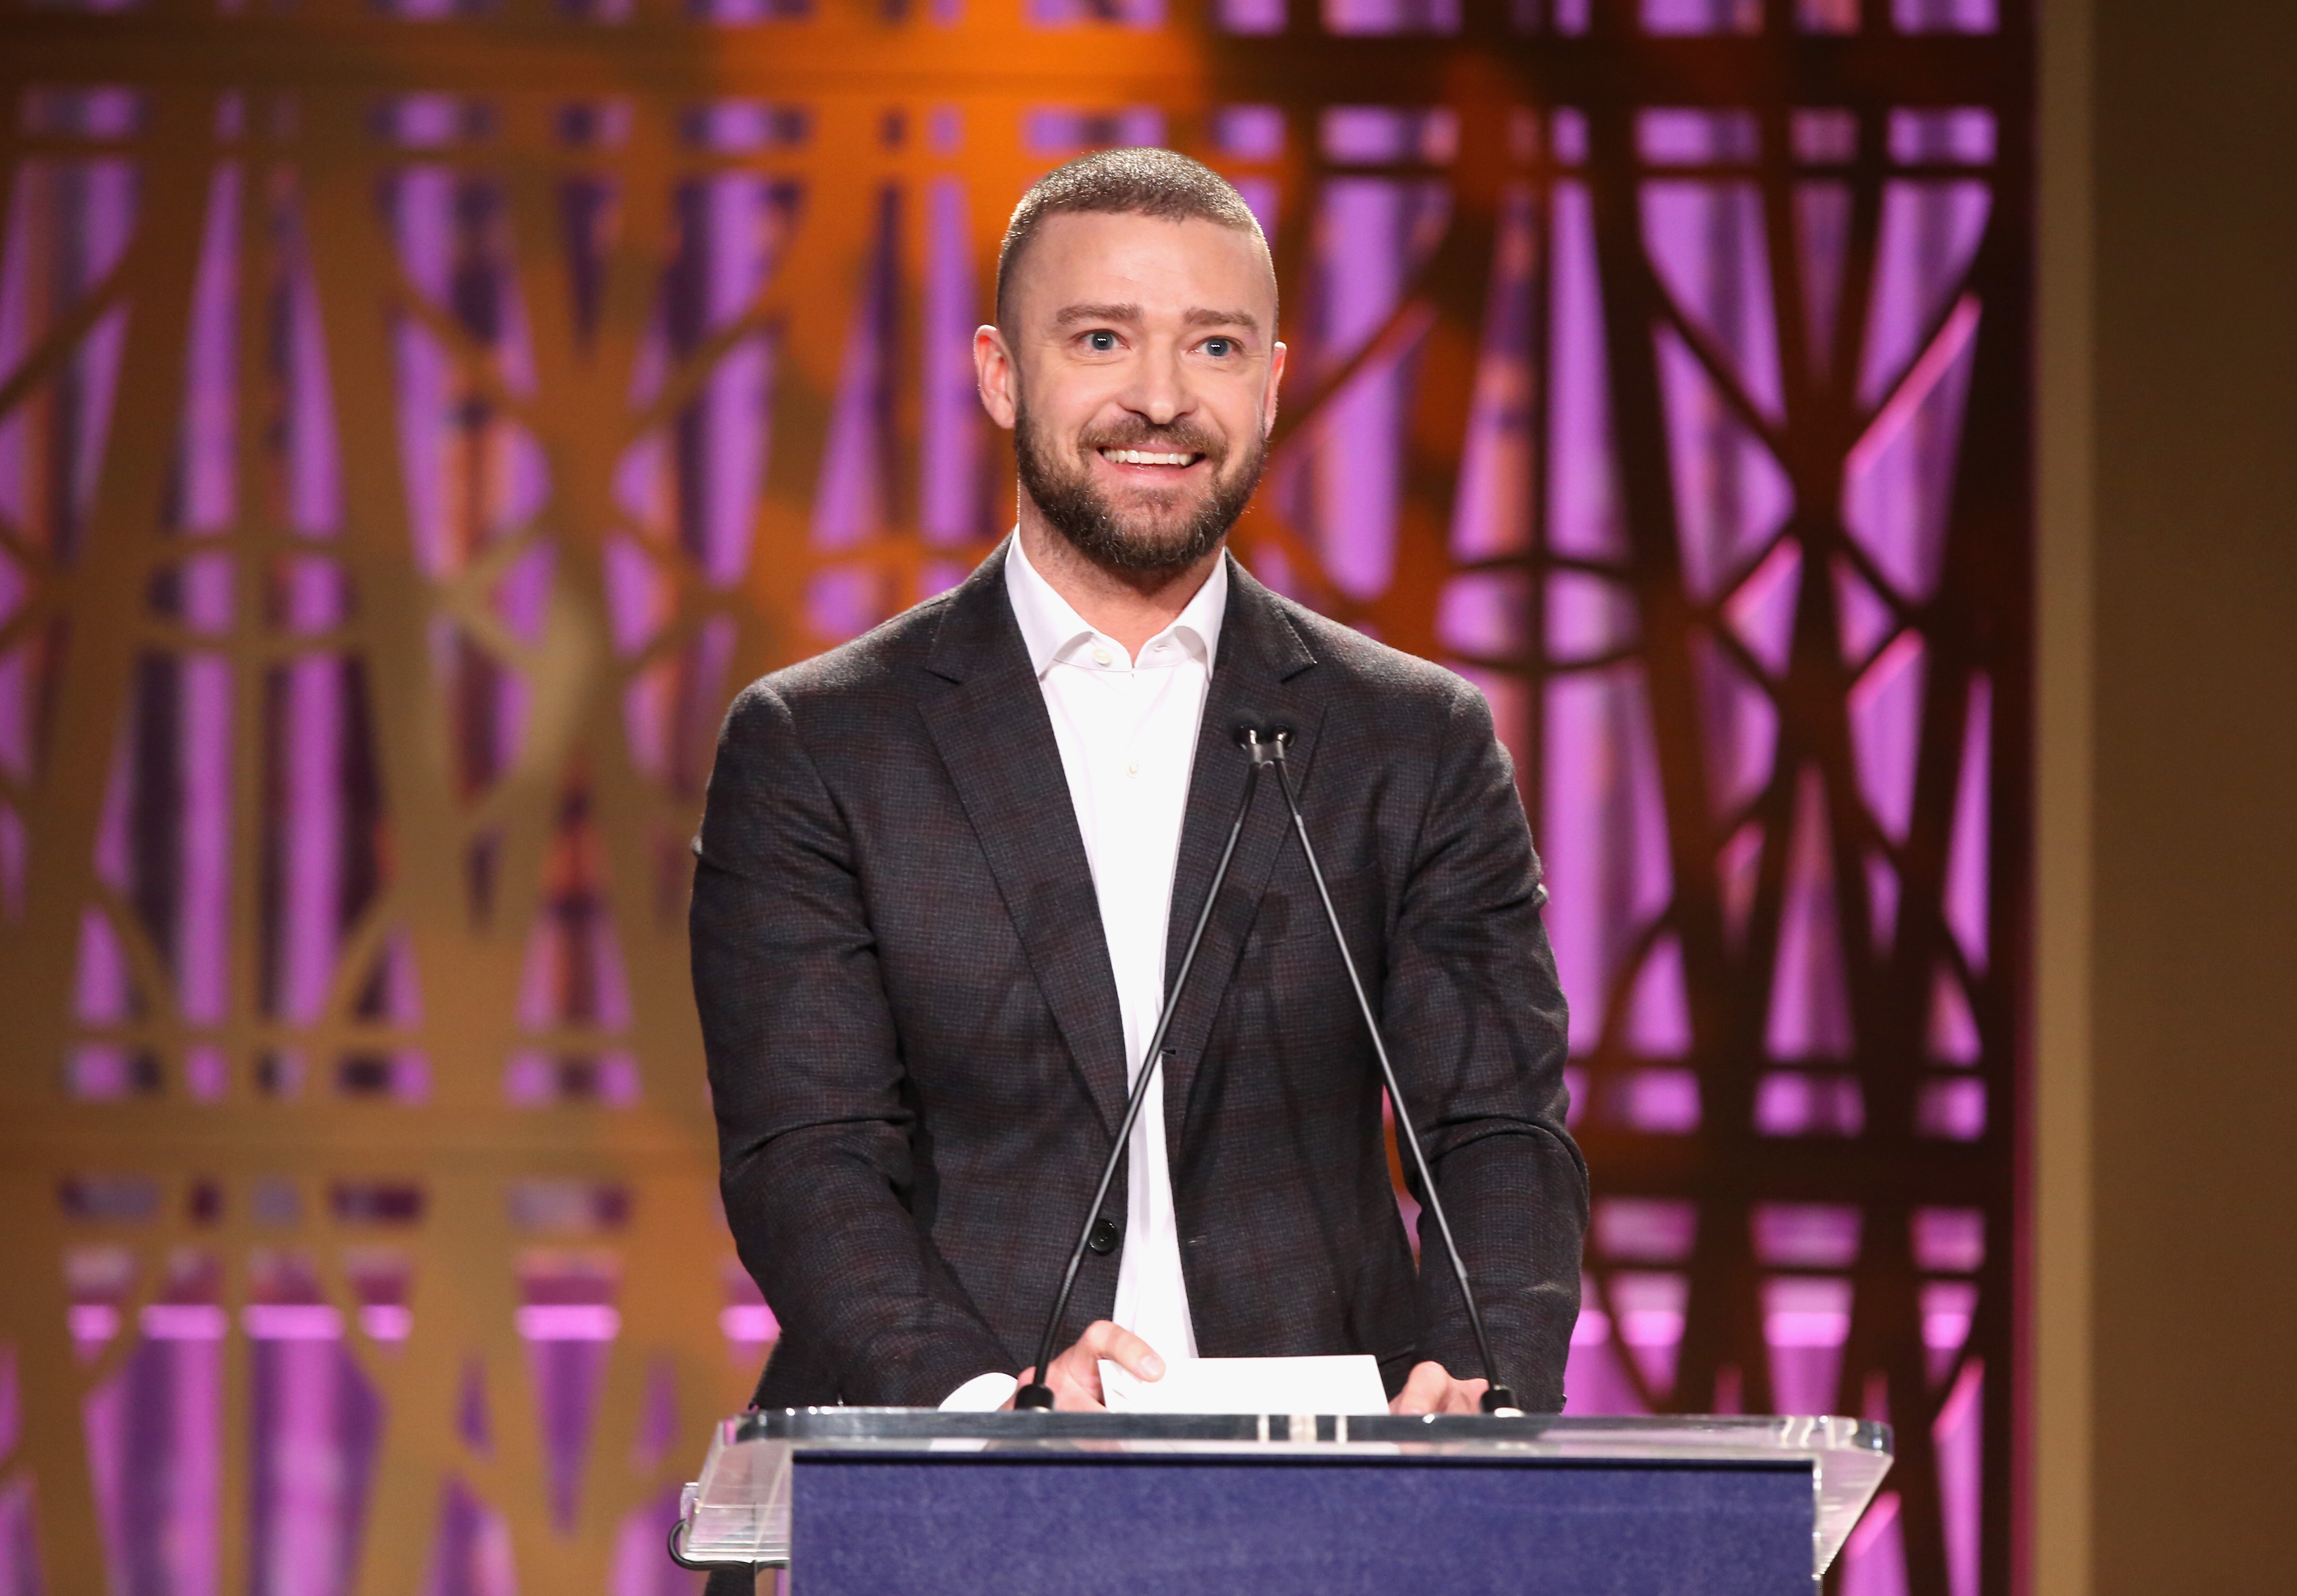 Justin Timberlake speaks onstage at The Hollywood Reporter's 2017 Women In Entertainment Breakfast at Milk Studios in Los Angeles, California on Dec. 6, 2017.